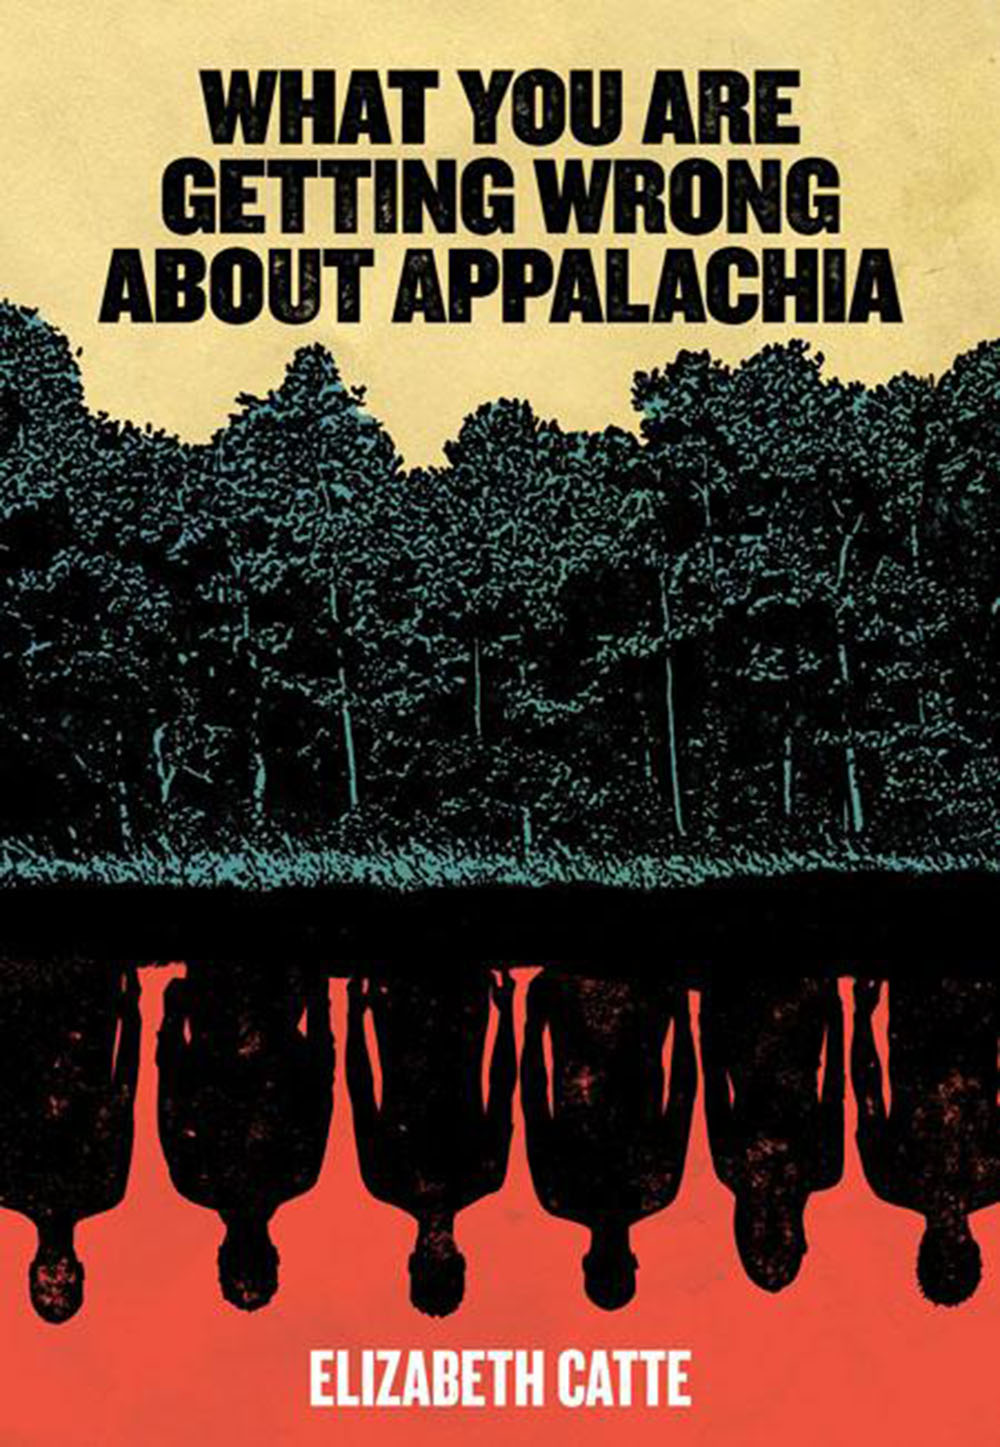 What You Are Getting Wrong About Appalachia, by Elizabeth Catte. Belt Publishing.